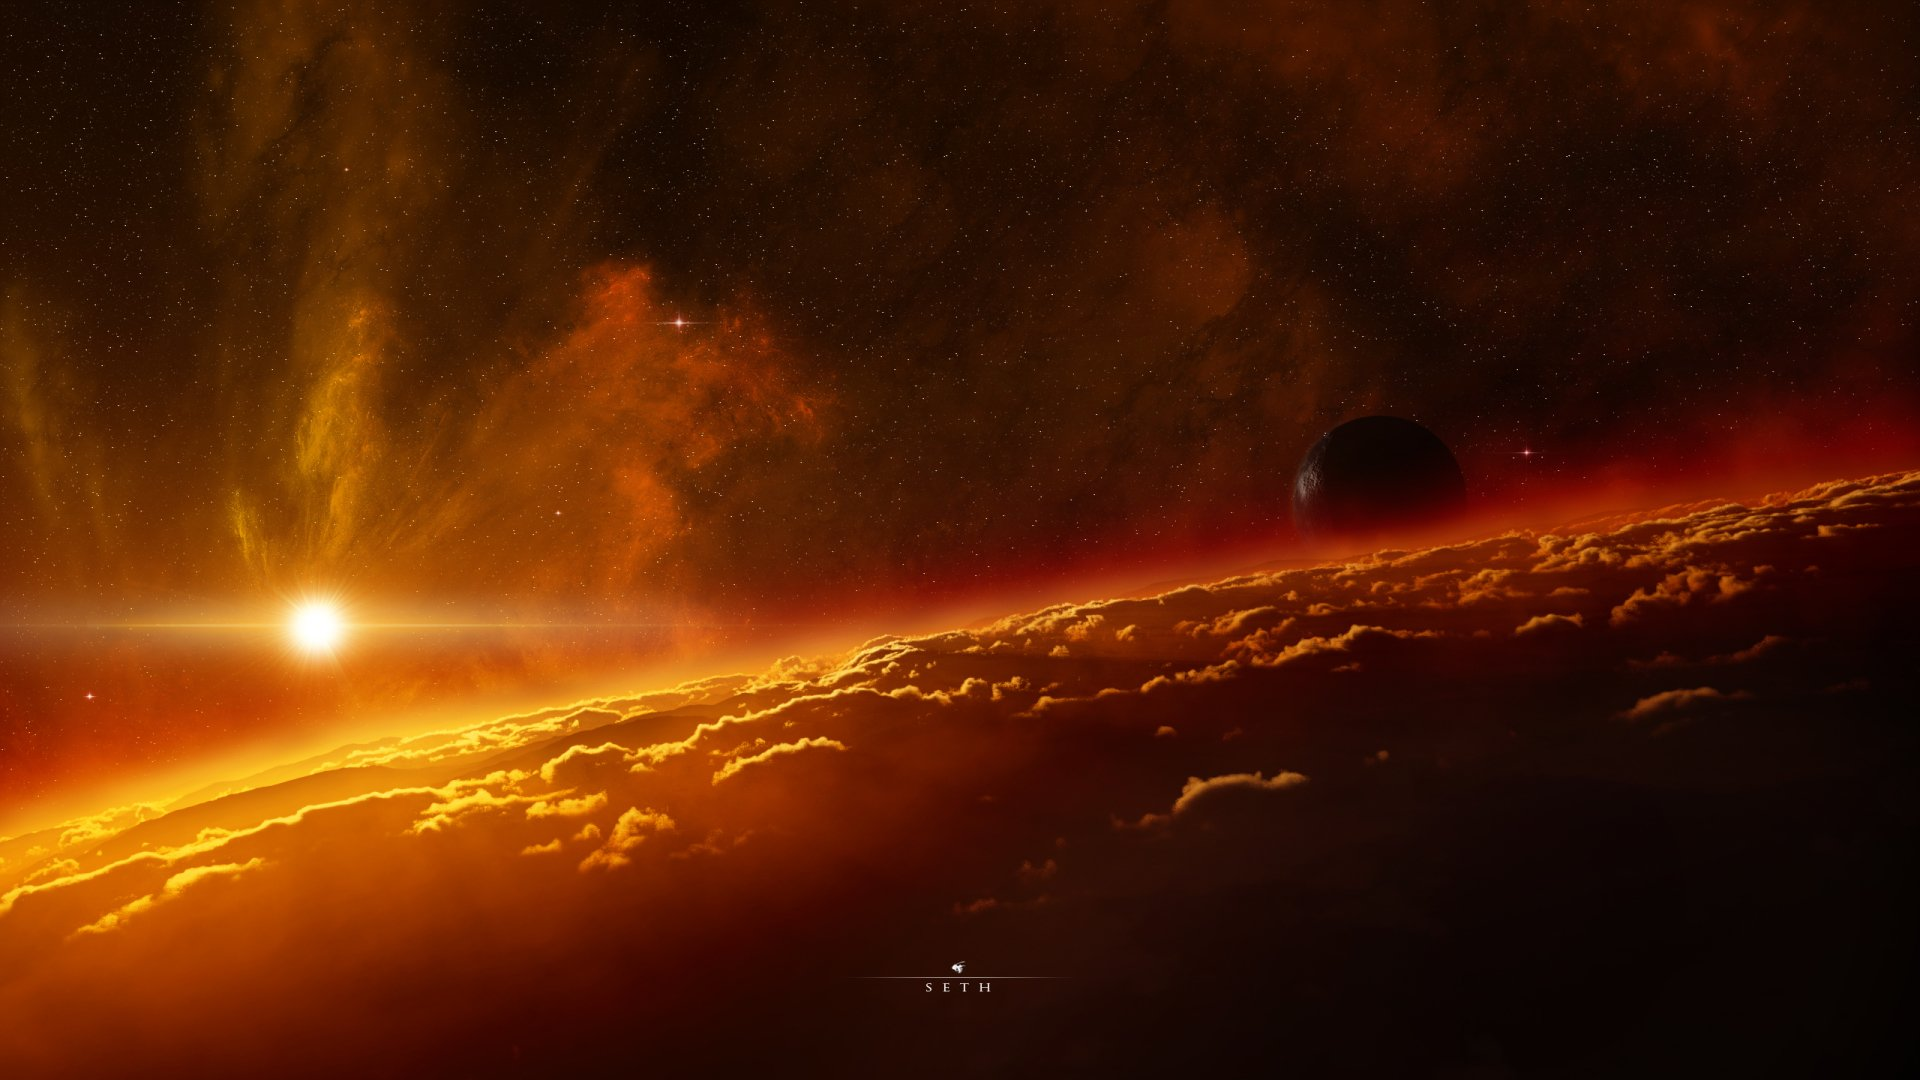 Sci Fi - Sunrise  Wallpaper